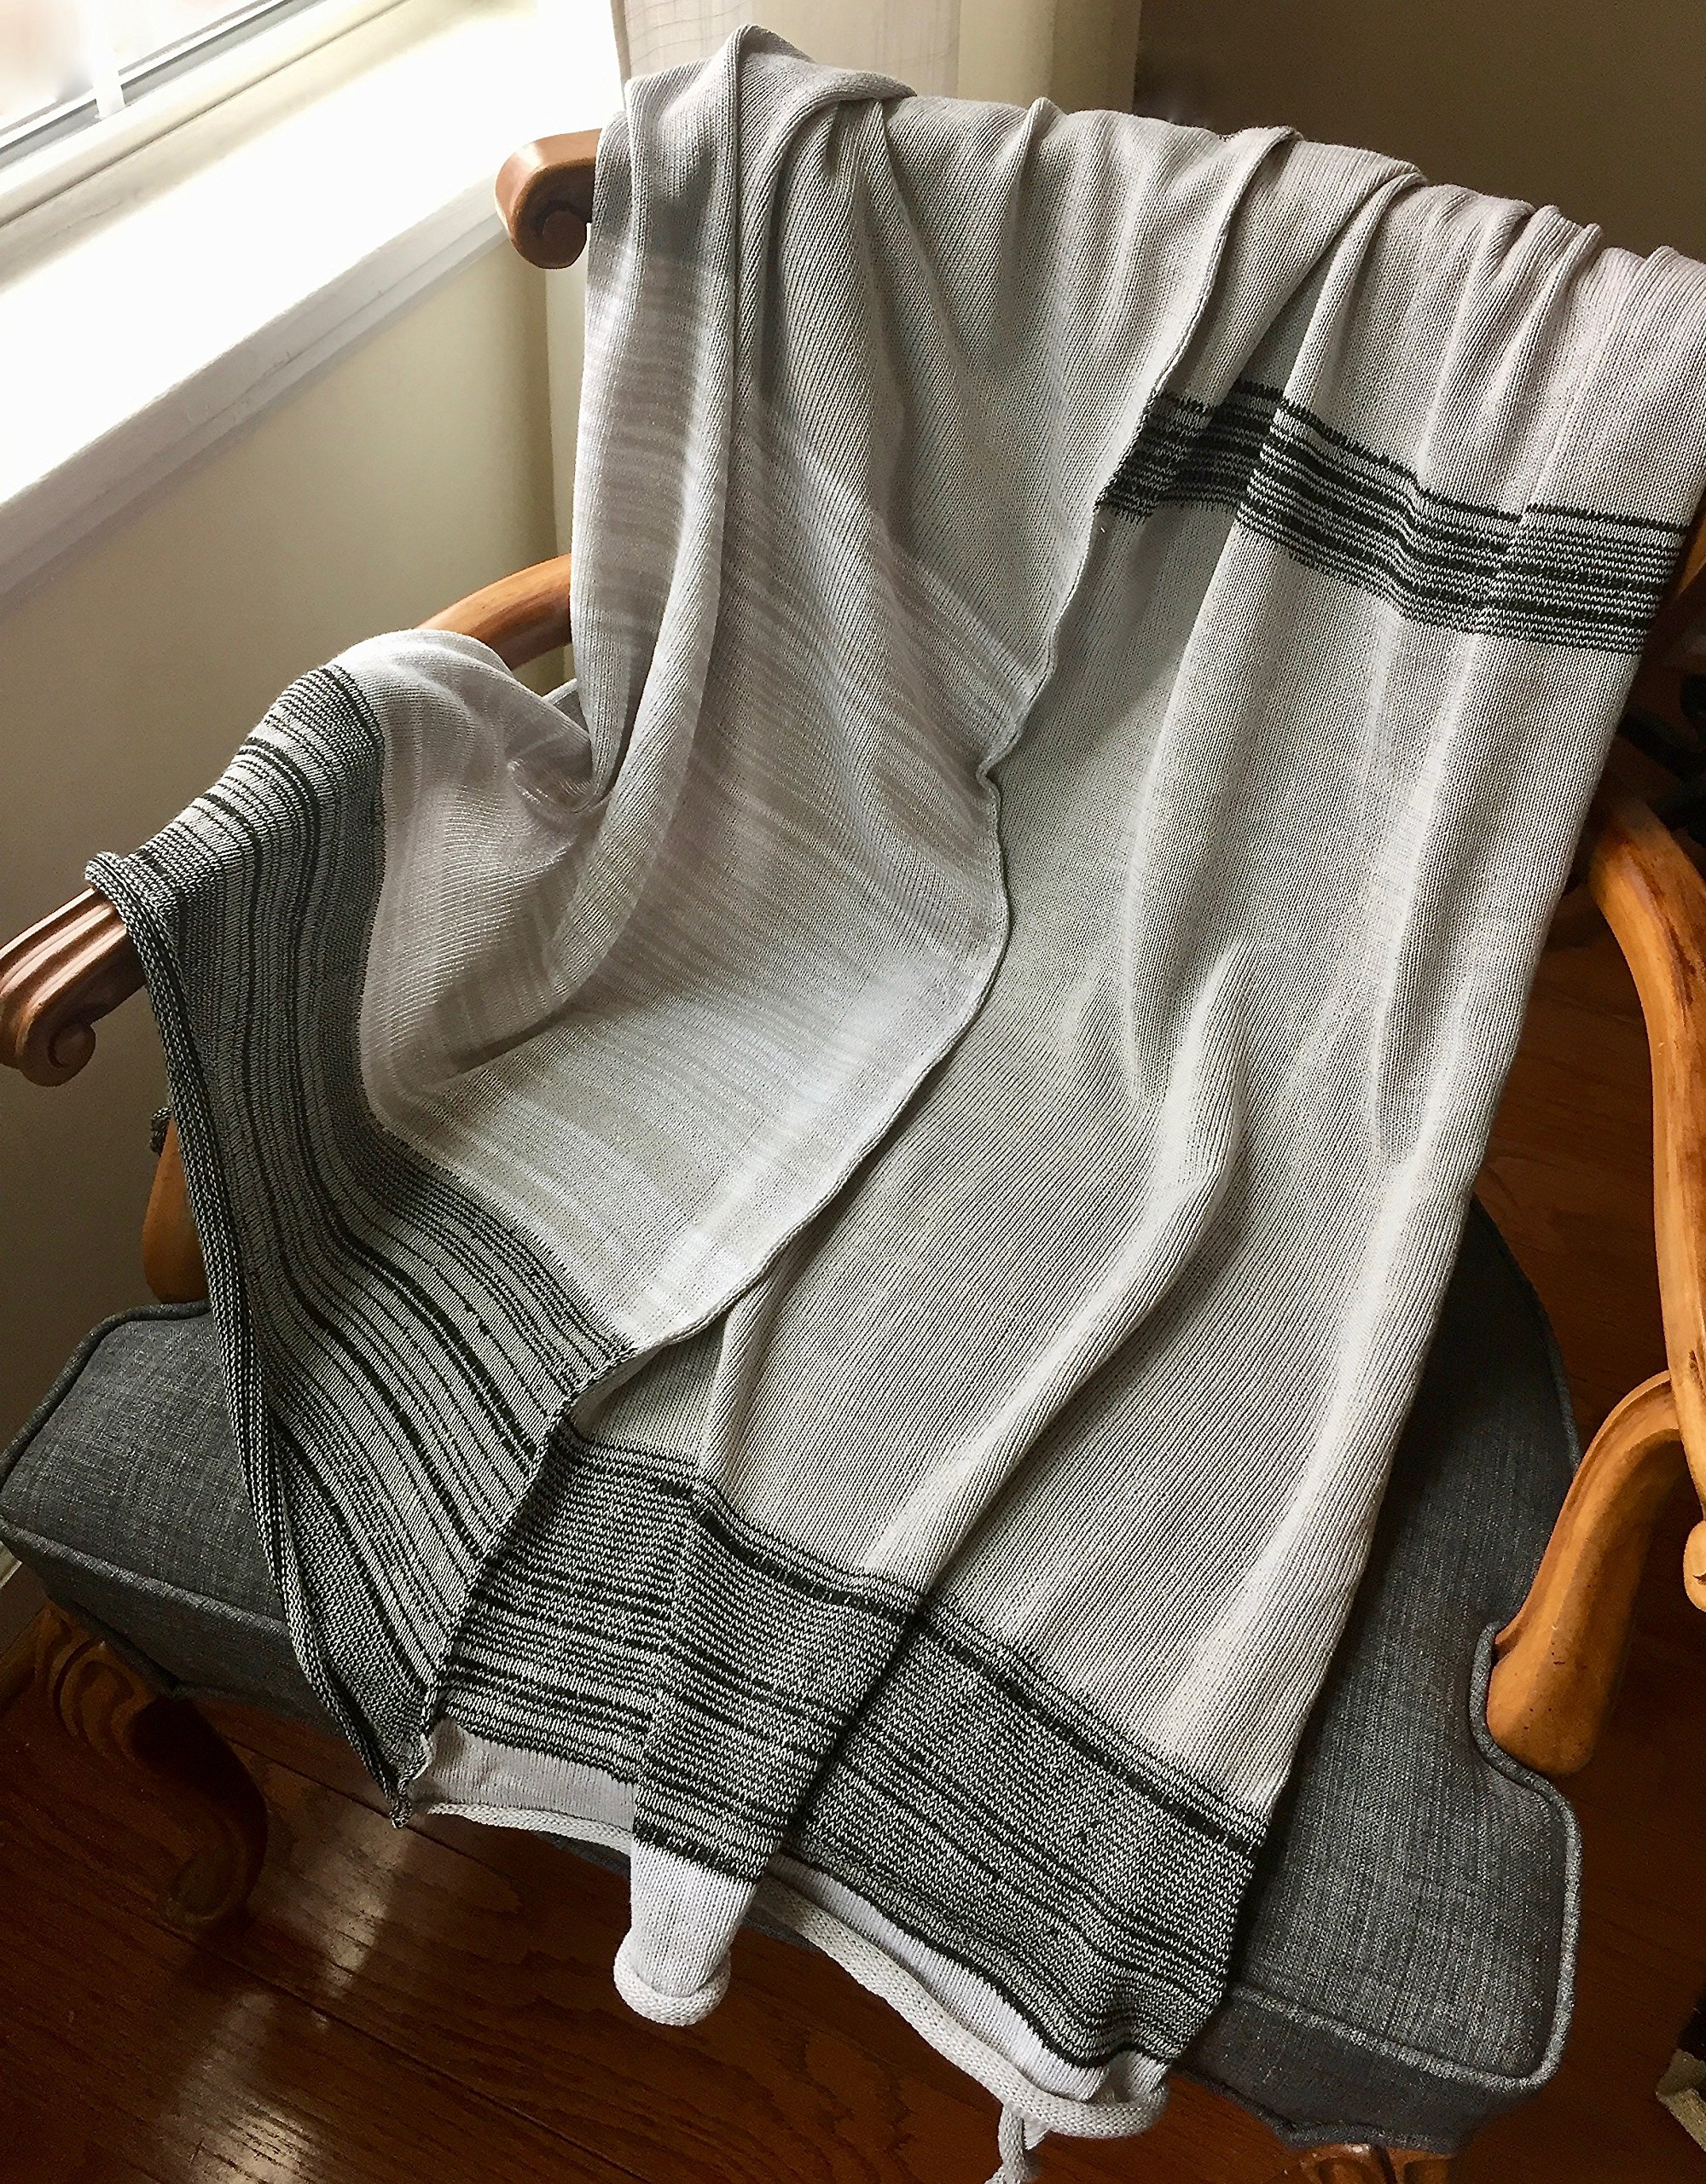 Organic Cotton Bamboo Hand-Knitted Throw Blanket for Home - Grey India Throw - Knit Home Decor by Pico Vela